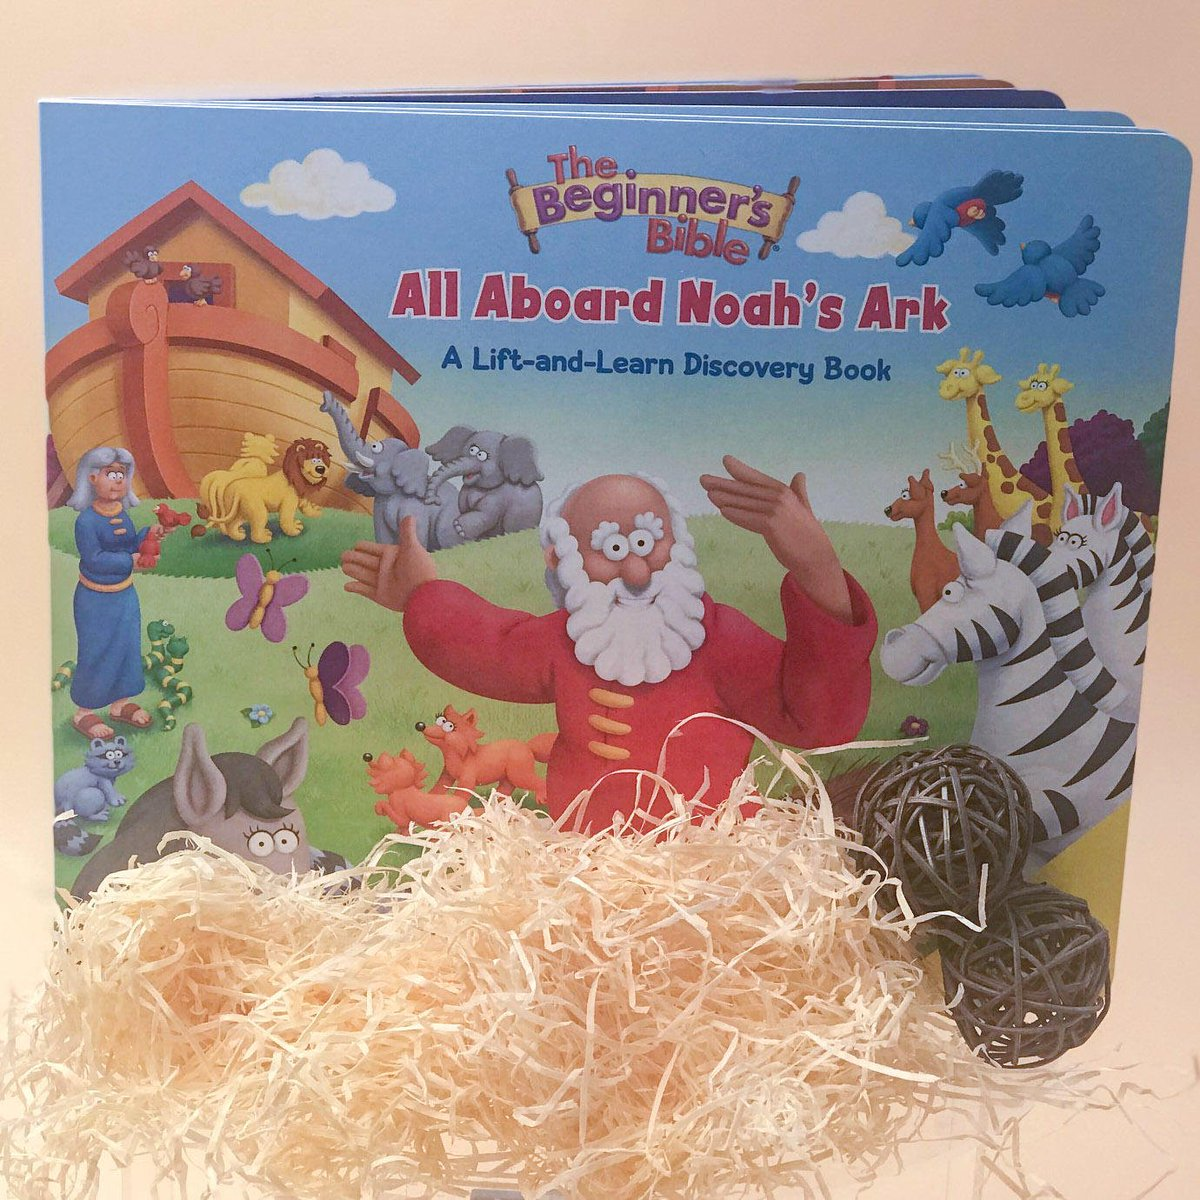 All Aboard! Noah's Ark, that is. The @beginnersbible All Aboard Noah's Ark is an adventure that you don't want to leave on the shelf. Includes 50 flaps that encourage children to identify colors, shapes, and sounds, match up animals, and so much more. https://t.co/GE14bmN5z9 https://t.co/GNp0dAVGAe